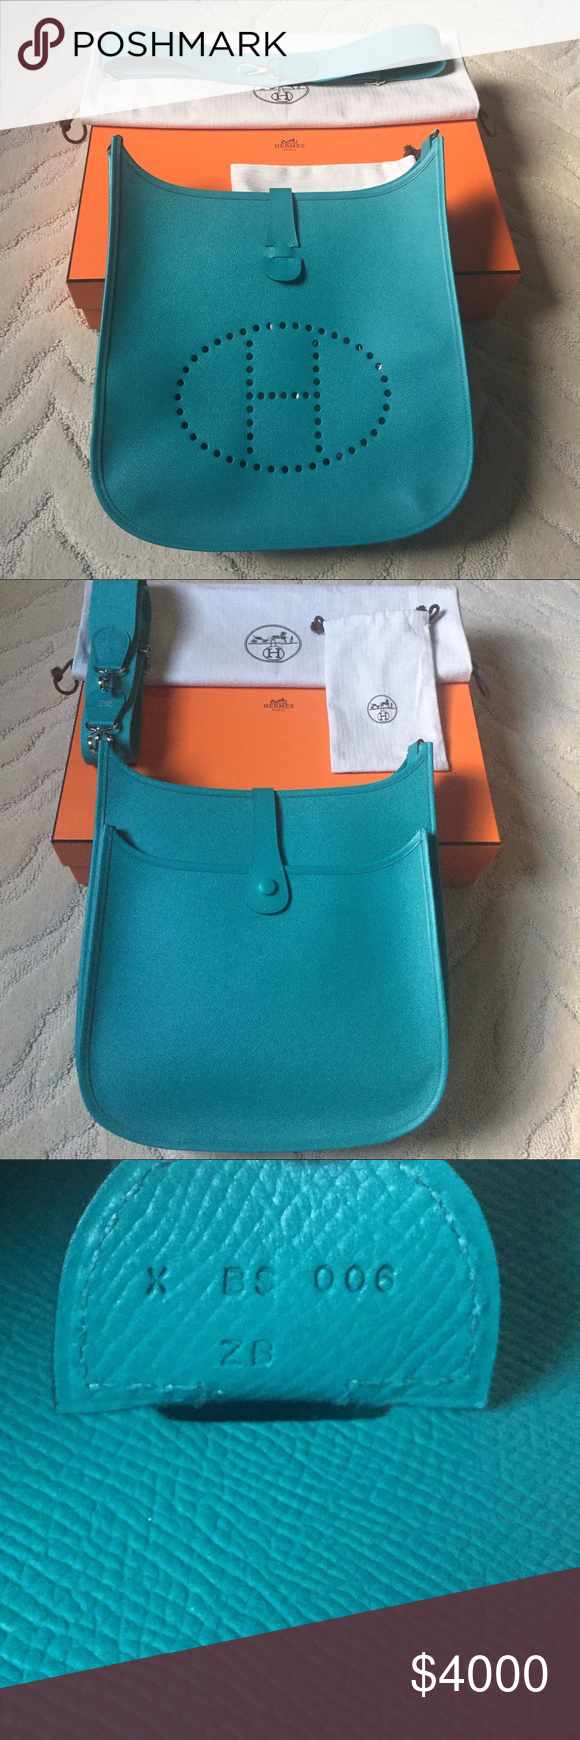 d0c3ad64e898 ... purchase hermes evelyne iii 33 brand new authentic hermes evelyne bag  with all original hermes packaging